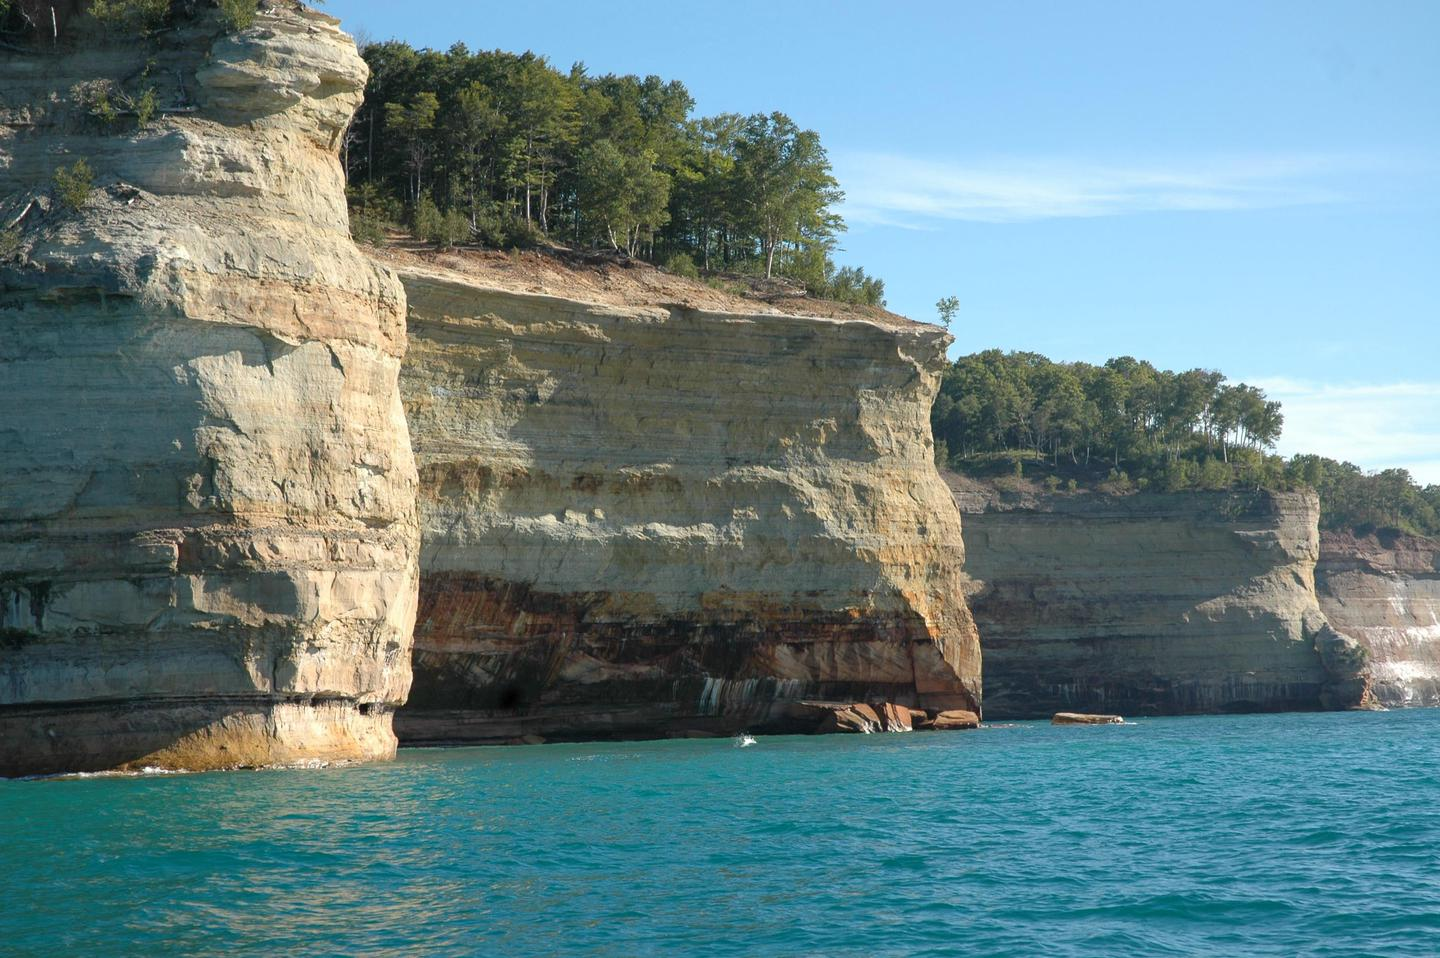 Battleship Row15 miles of carved and colorful cliffs along the Lake Superior shoreine.